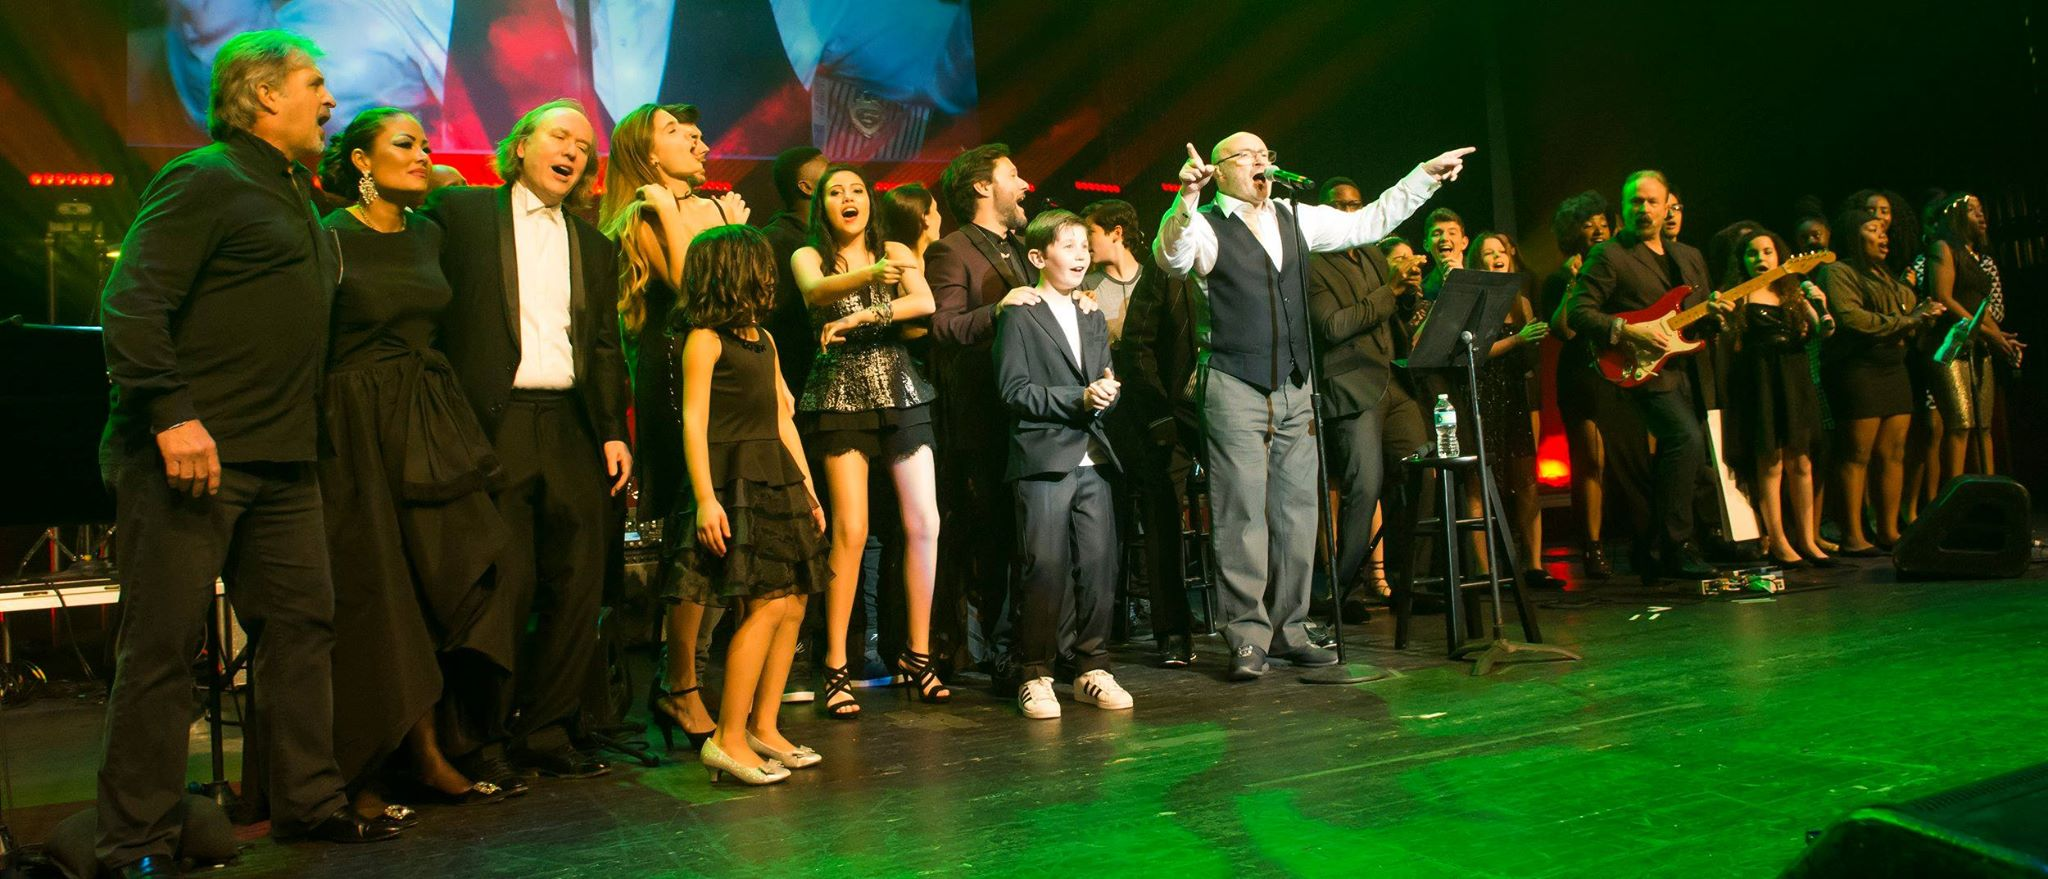 Phil & Orianne Collins' Little Dreams Foundation Benefit Gala at The Fillmore   Photo: Magical Photos